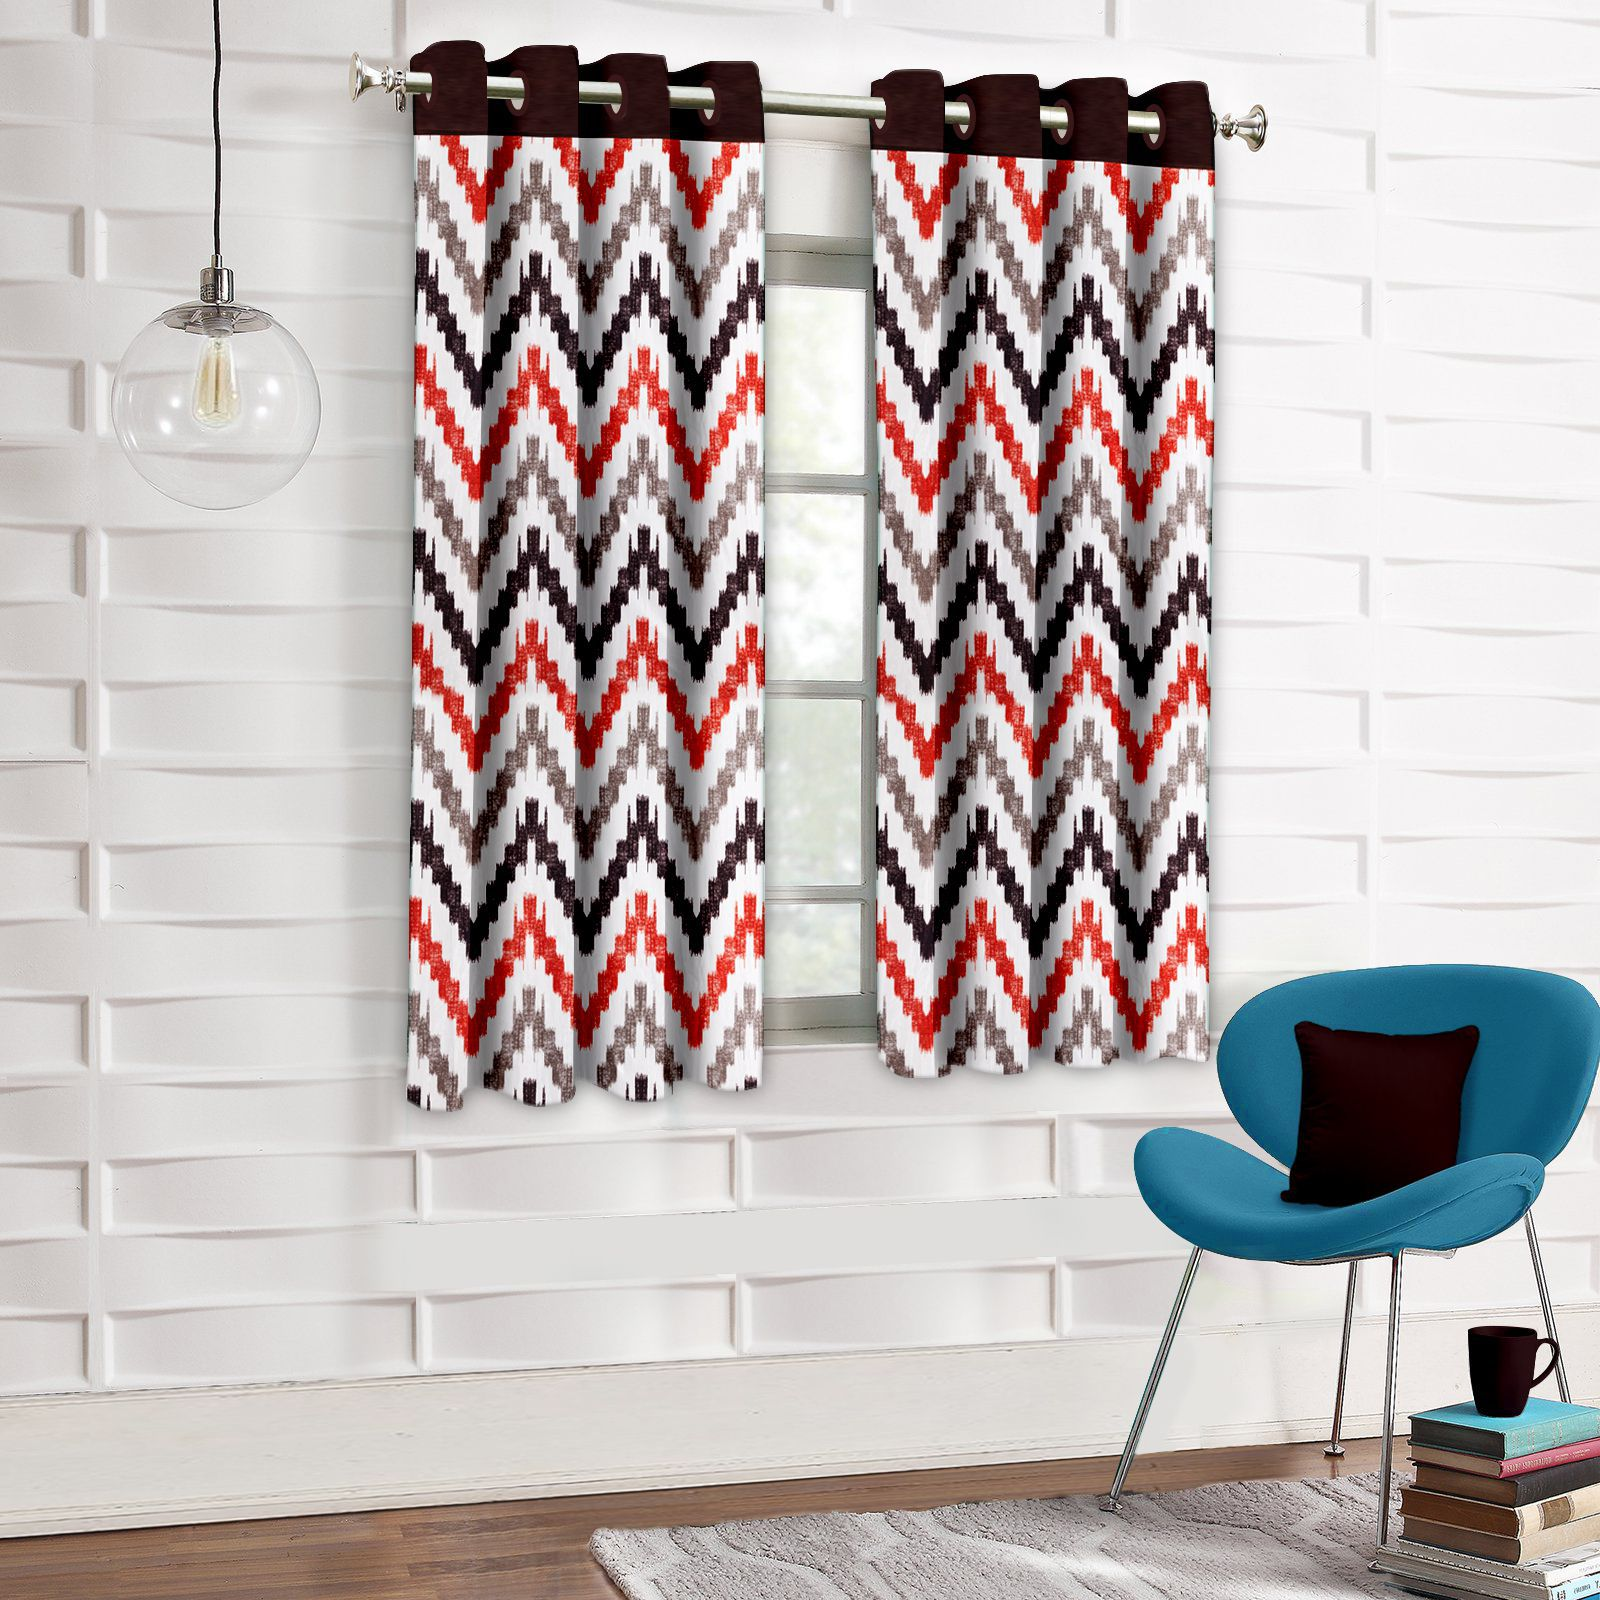 Story@Home Set of 2 Window Eyelet Curtains Geometrical Multi Color